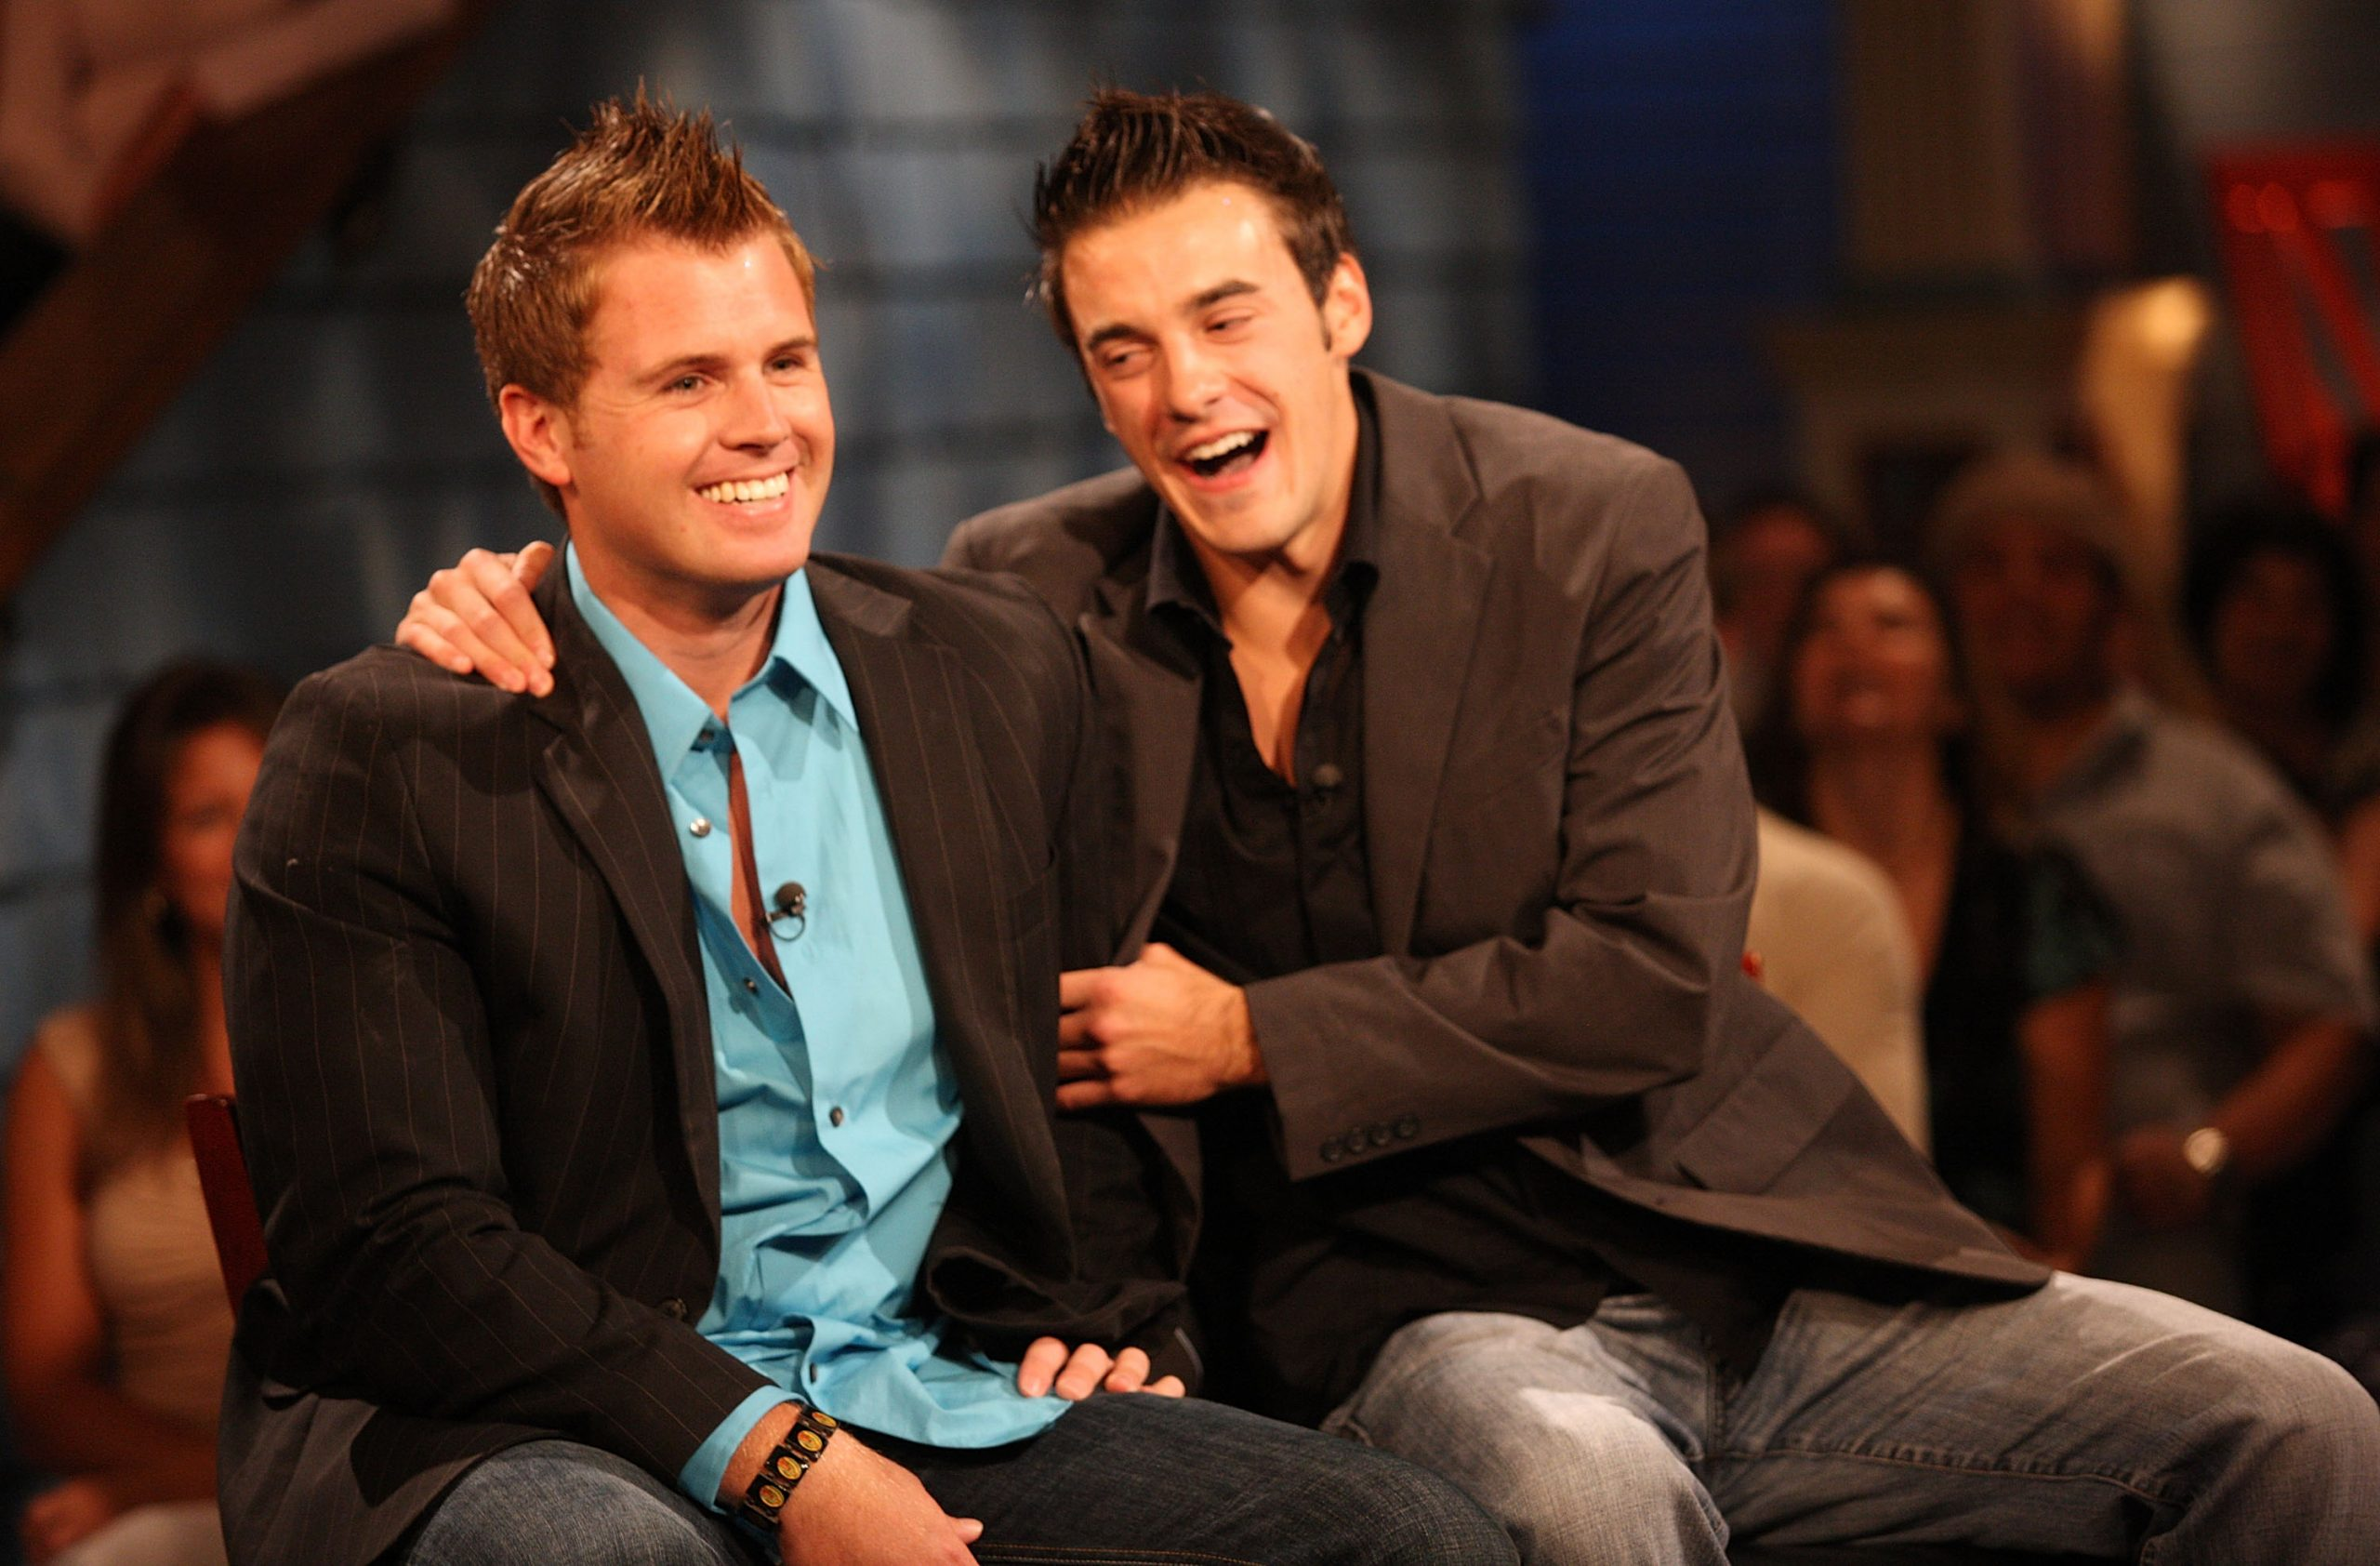 Second place contestant Memphis Garrett (L) and Dan Gheesling the winner of the Big Brother Season 10 Grand Finale